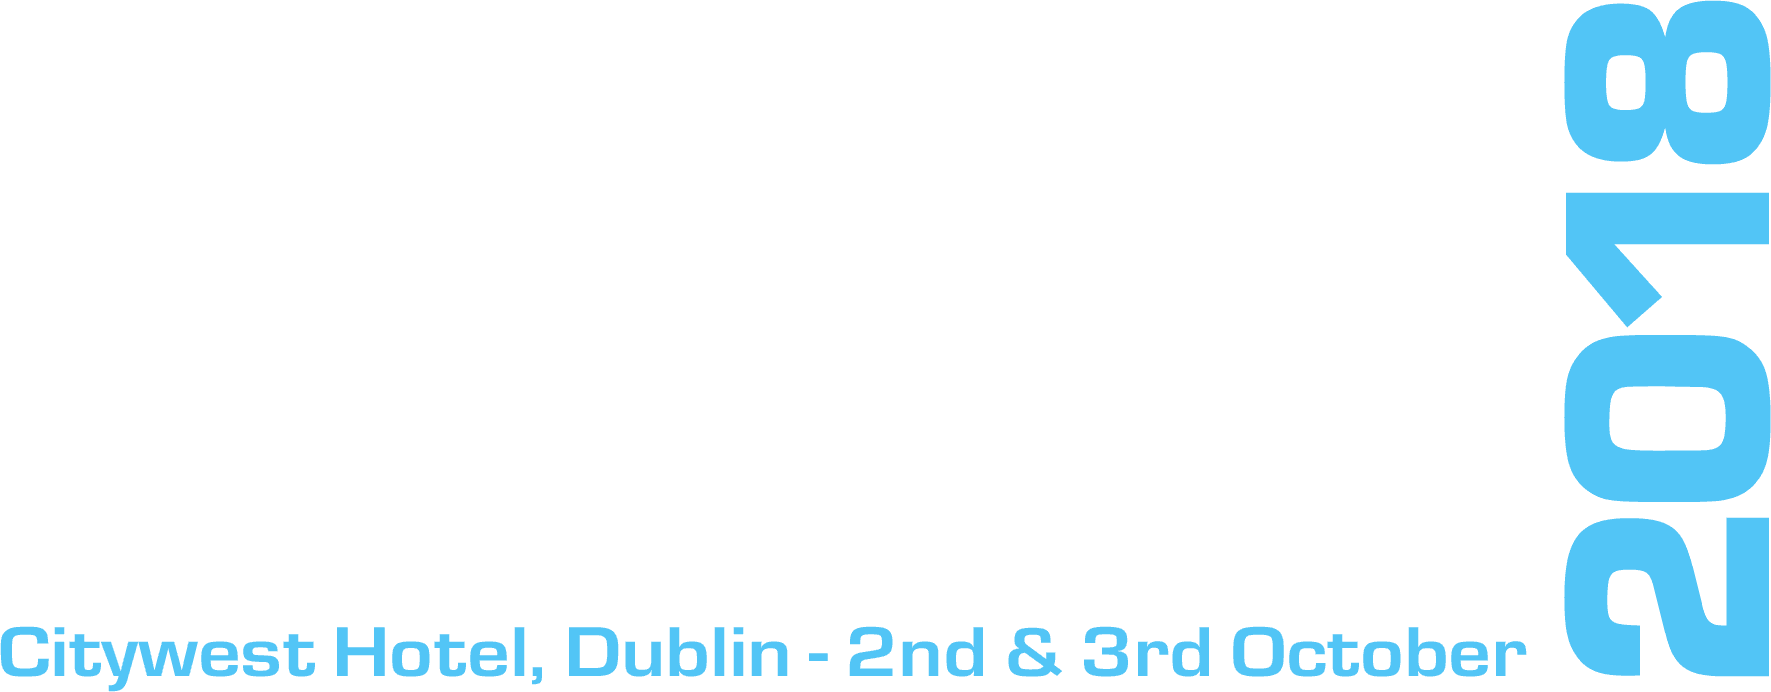 Welcome to Substation Safety Expo 2016